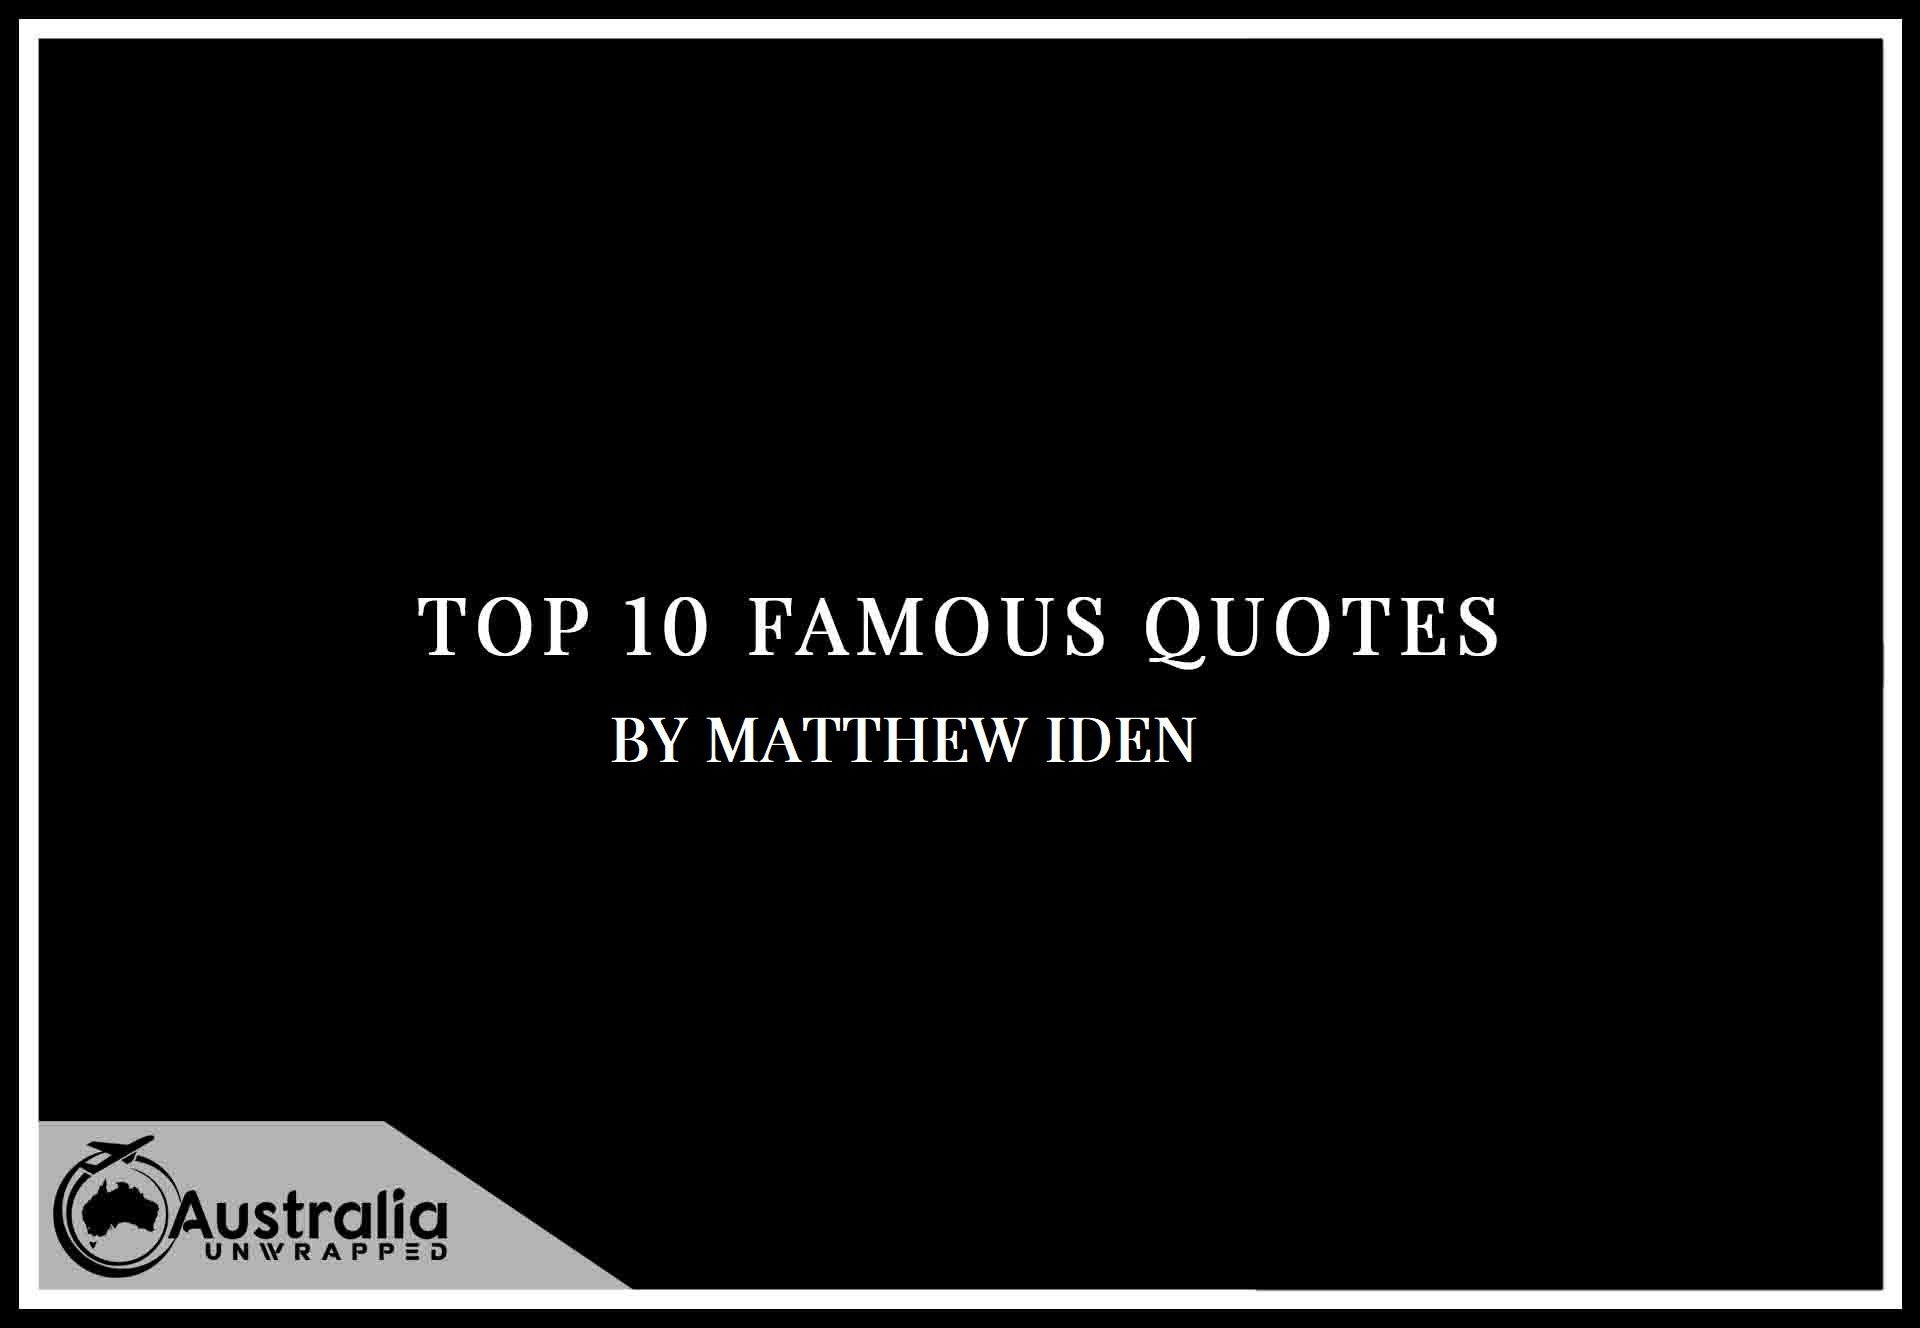 Top 10 Famous Quotes by Author Matthew Iden